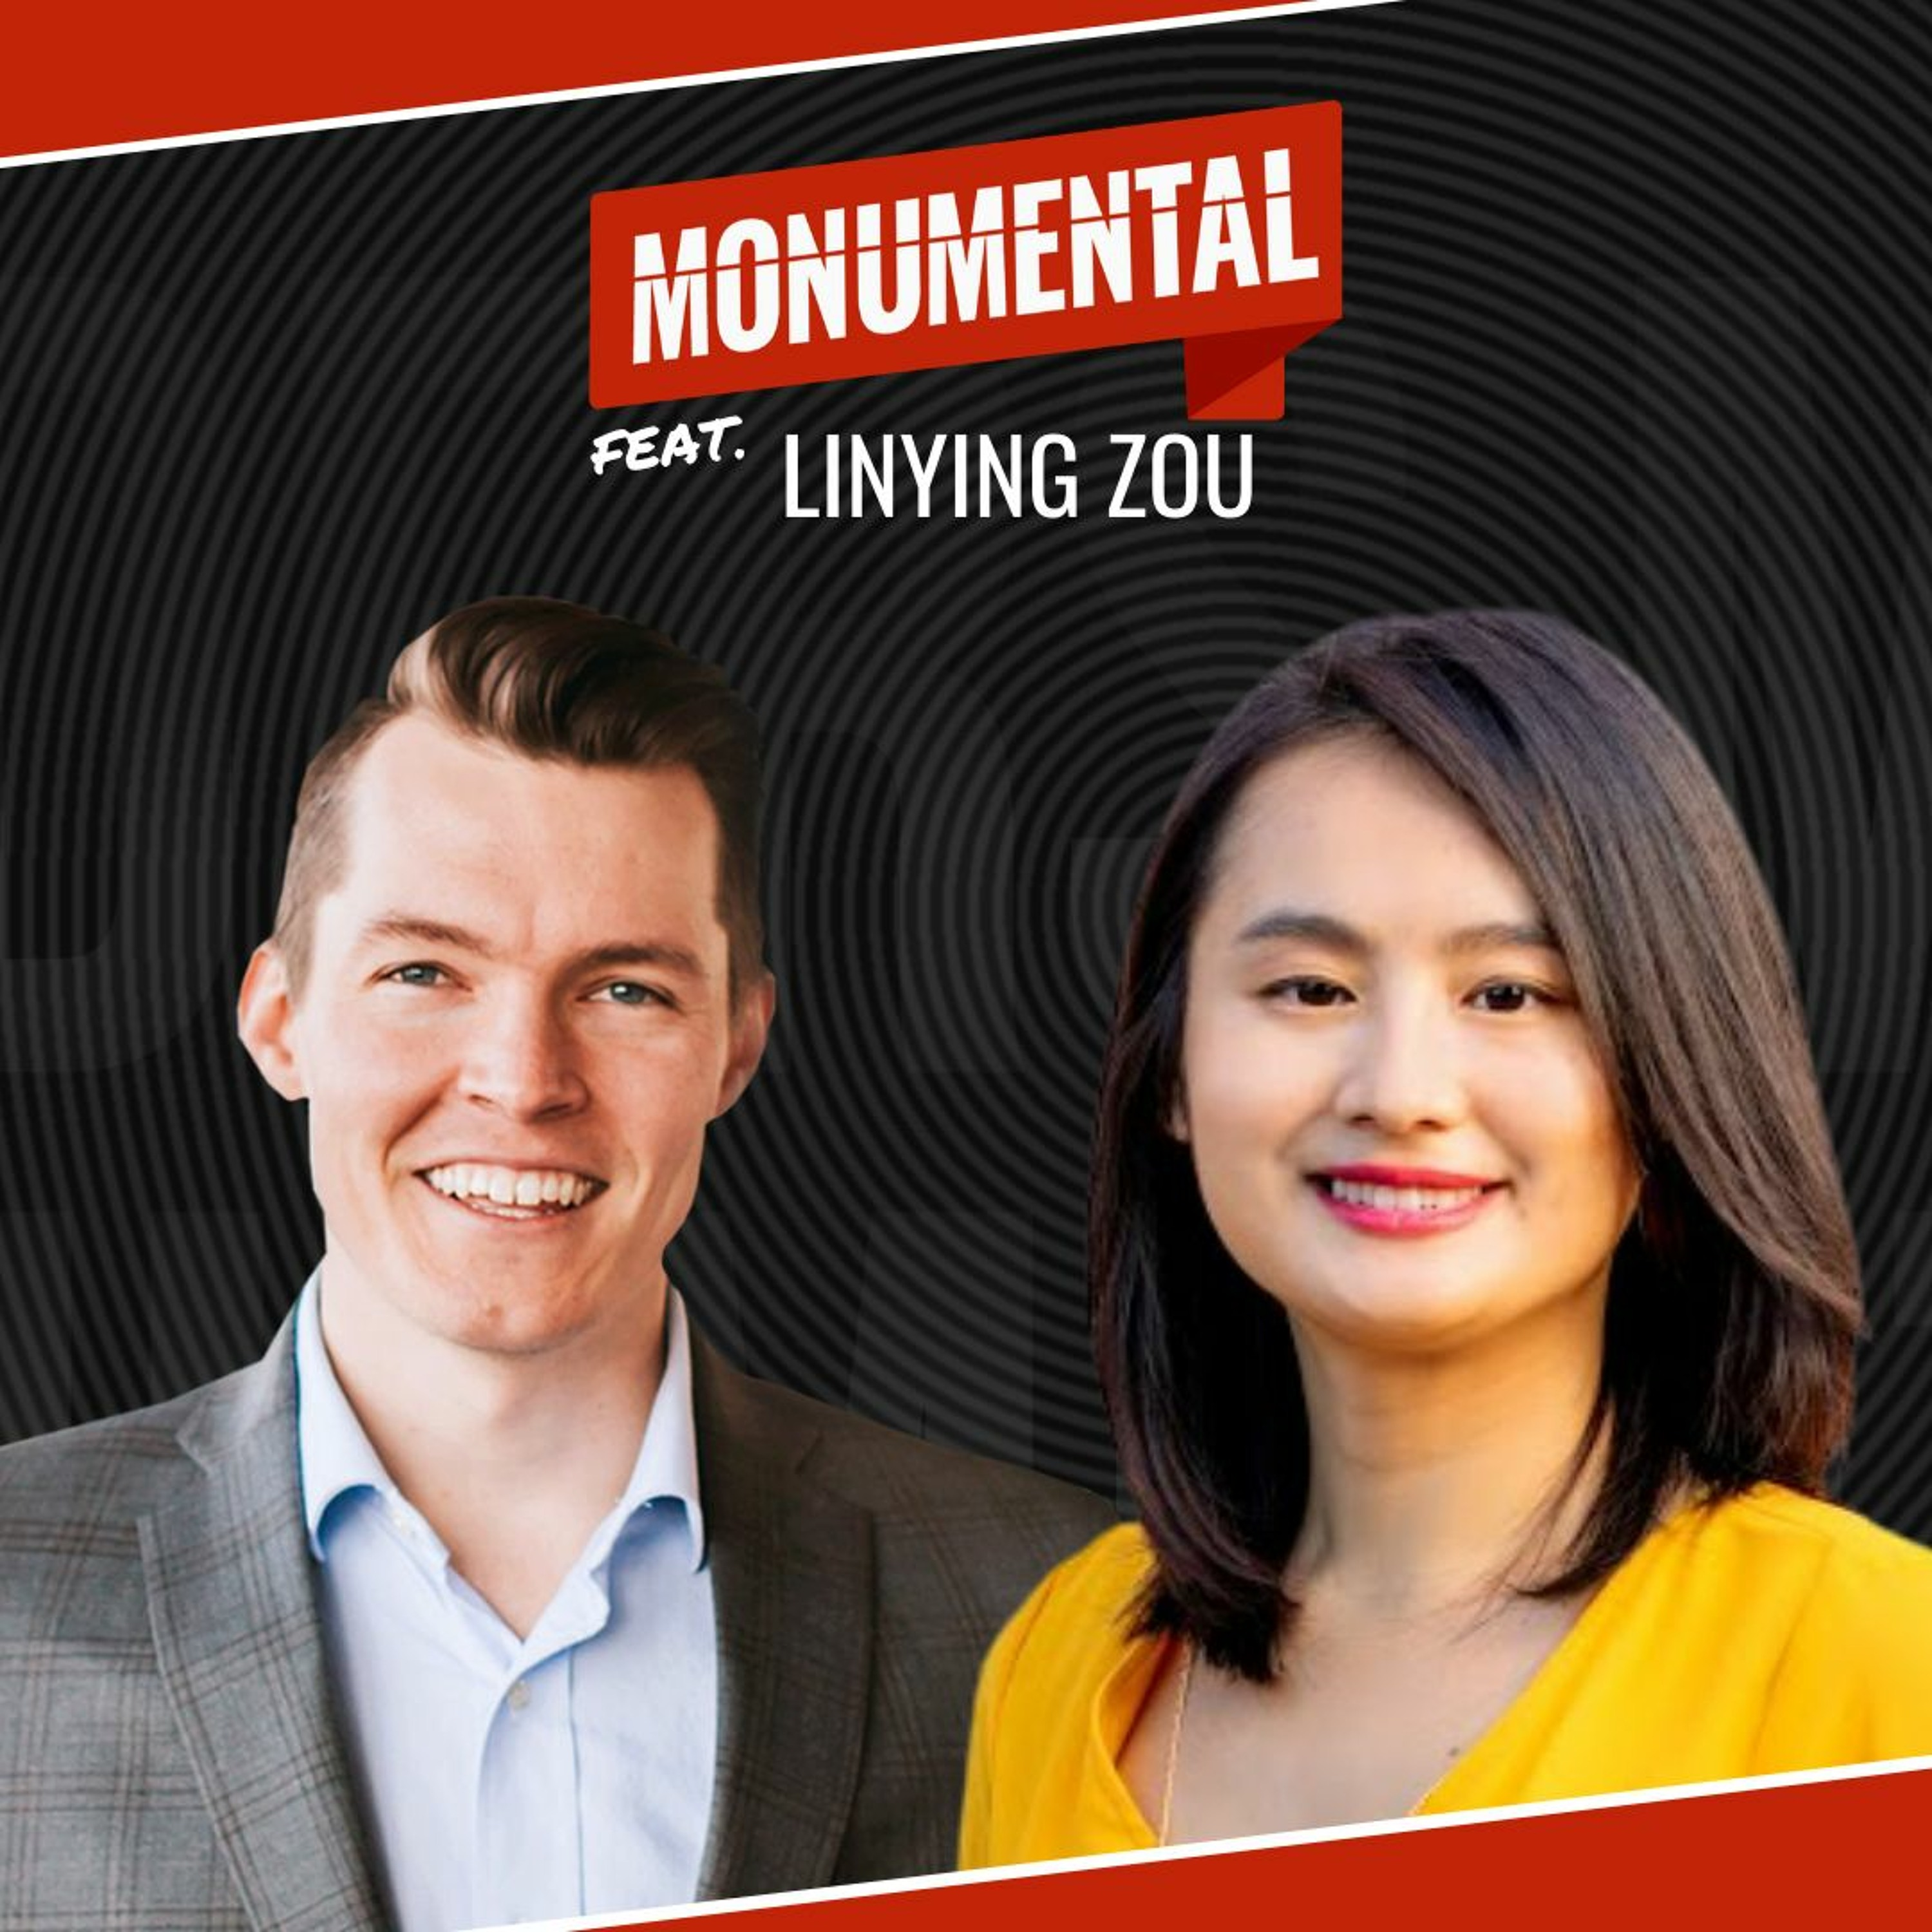 Building a Successful Founding Team for Real Estate Investment with Linying Zou